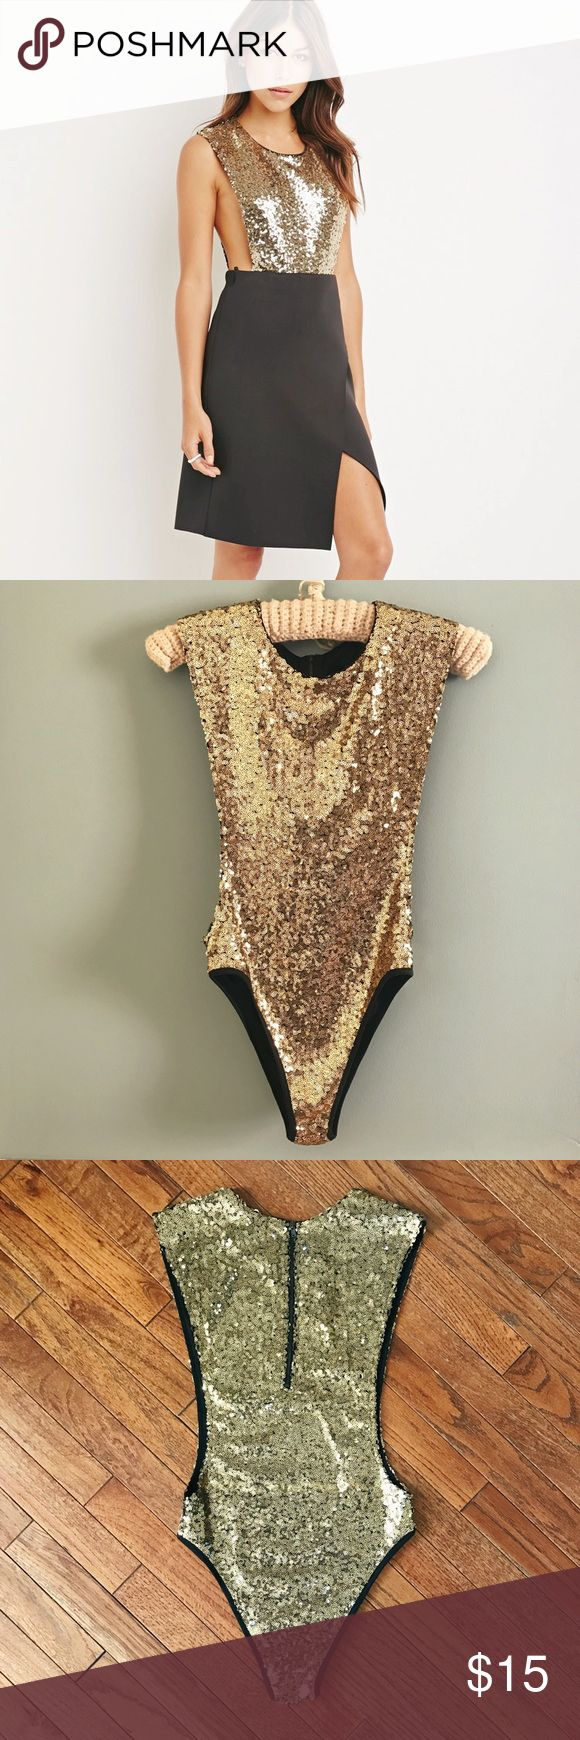 NWT Forever 21 Gold Sequin Bodysuit ✨NWT Forever 21 Gold Sequin Bodysuit. Bodysuit is new with tags, size small. A great going out piece! ✨ Forever 21 Other